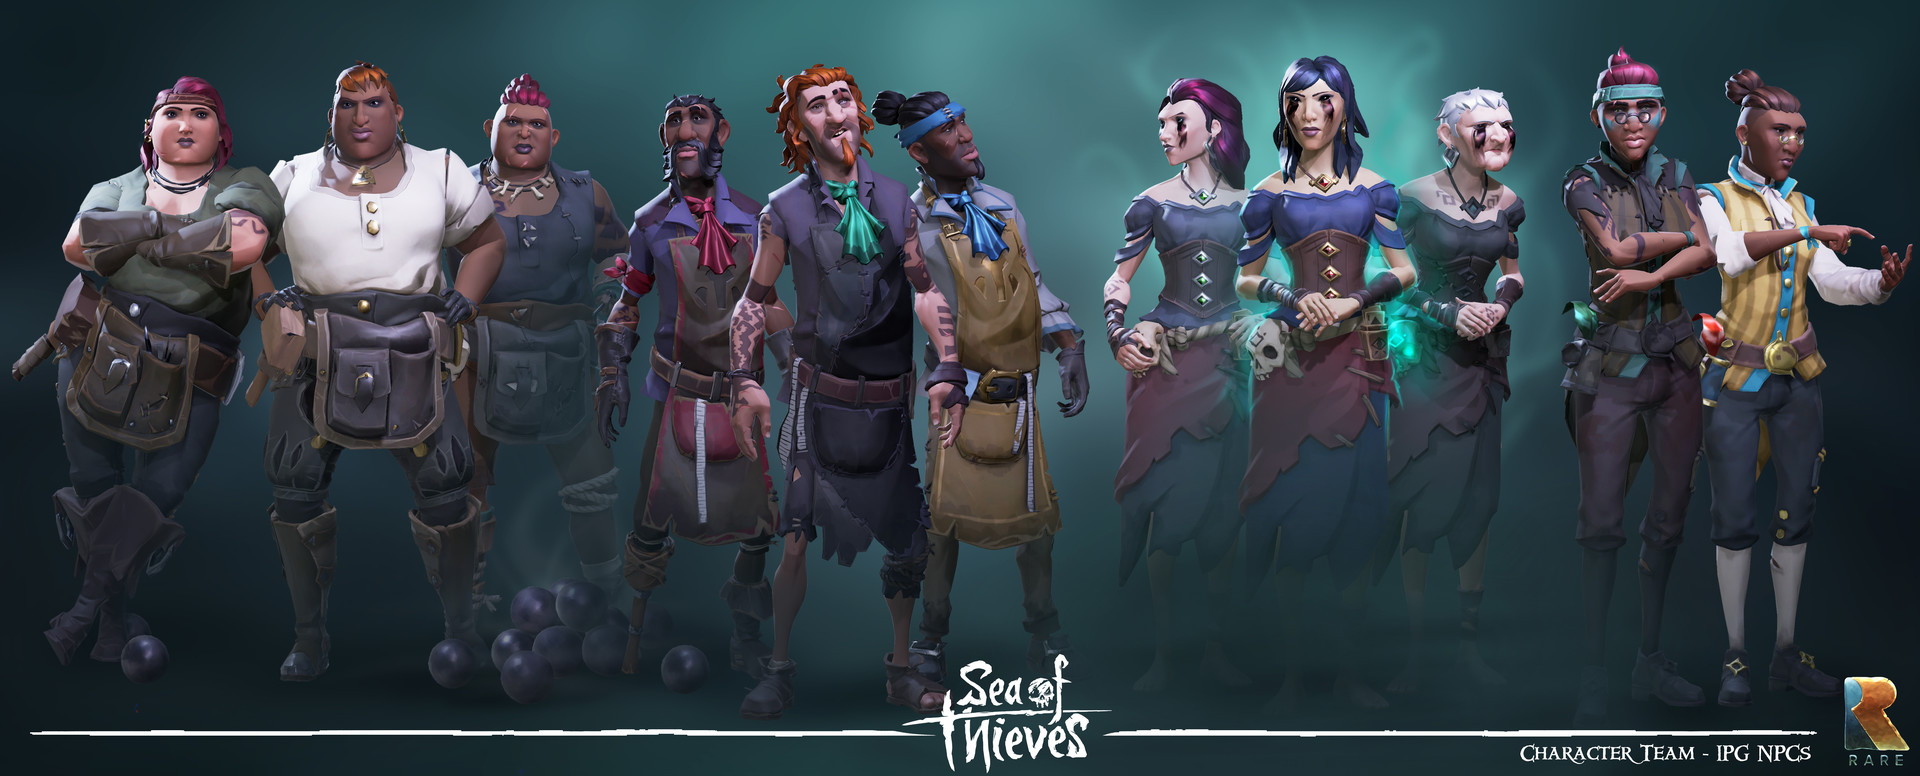 A selection of NPCs generated from the IPG.  You can see the diversity and personality of the generated characters really shine here.  All work by the Character Art team at Rare.